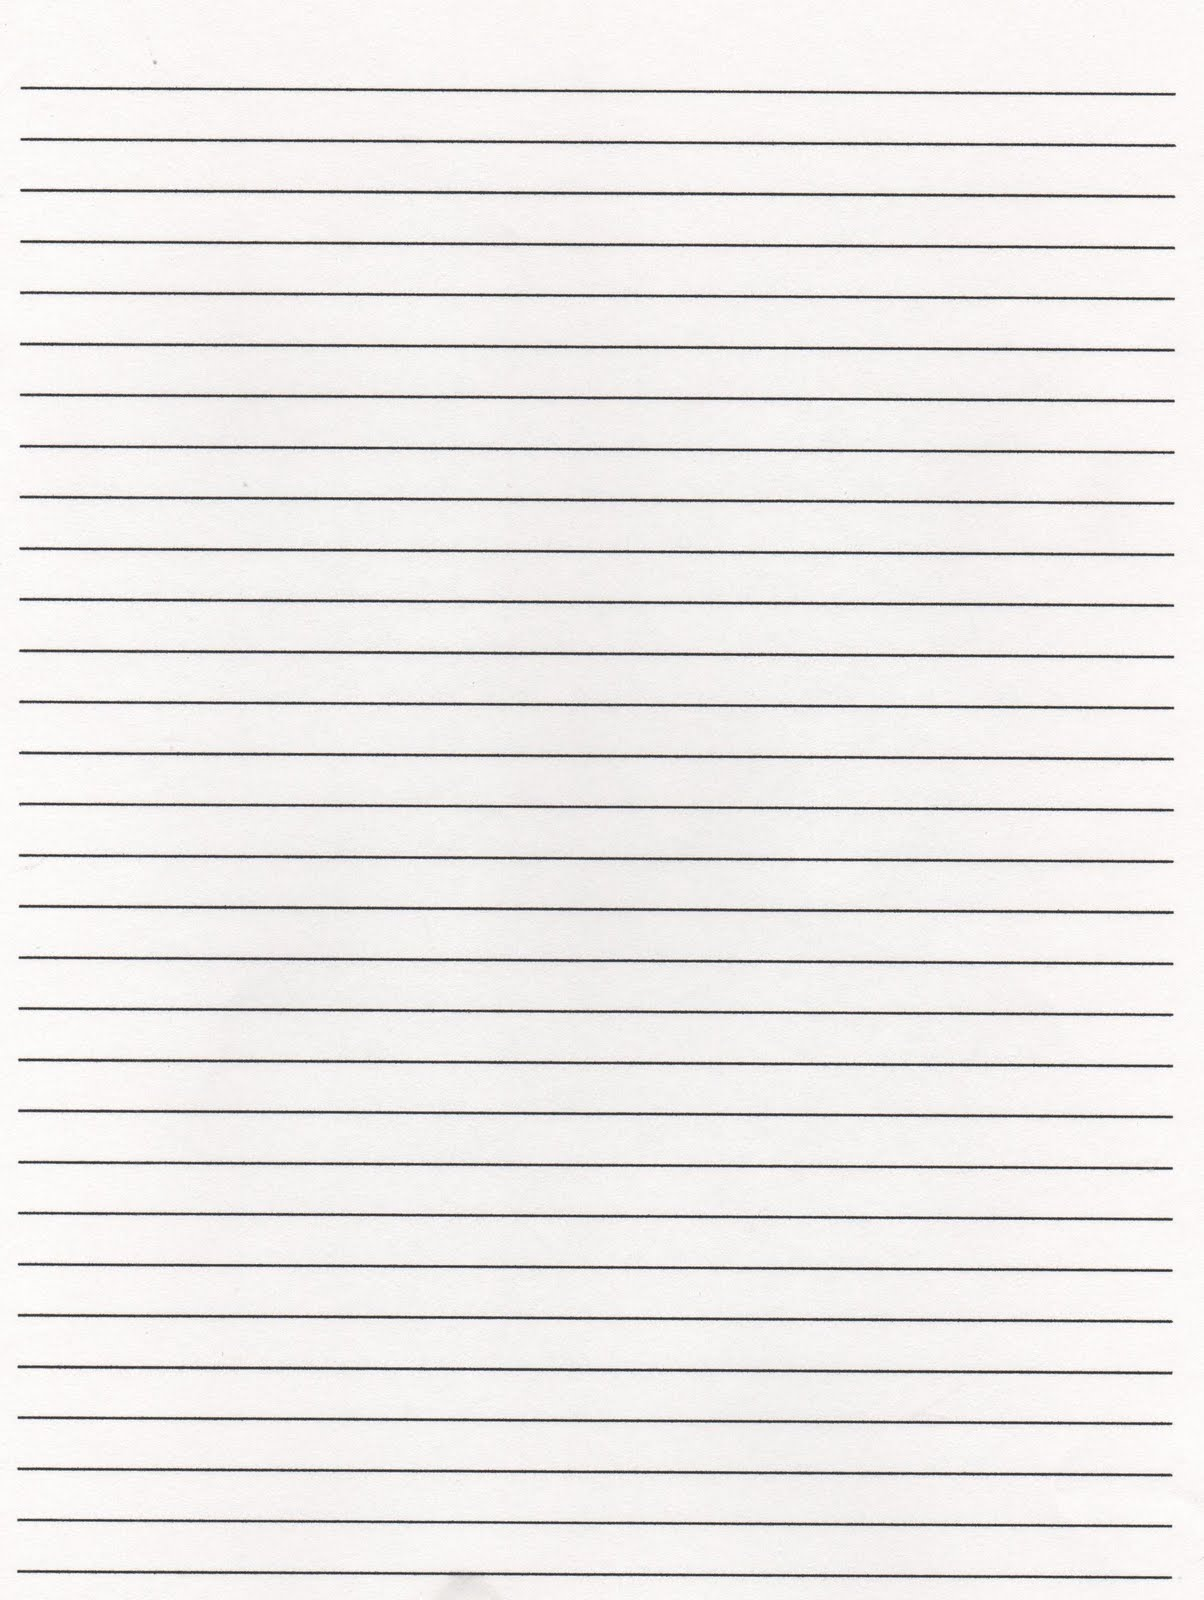 elementary school enrichment activities  lined paper